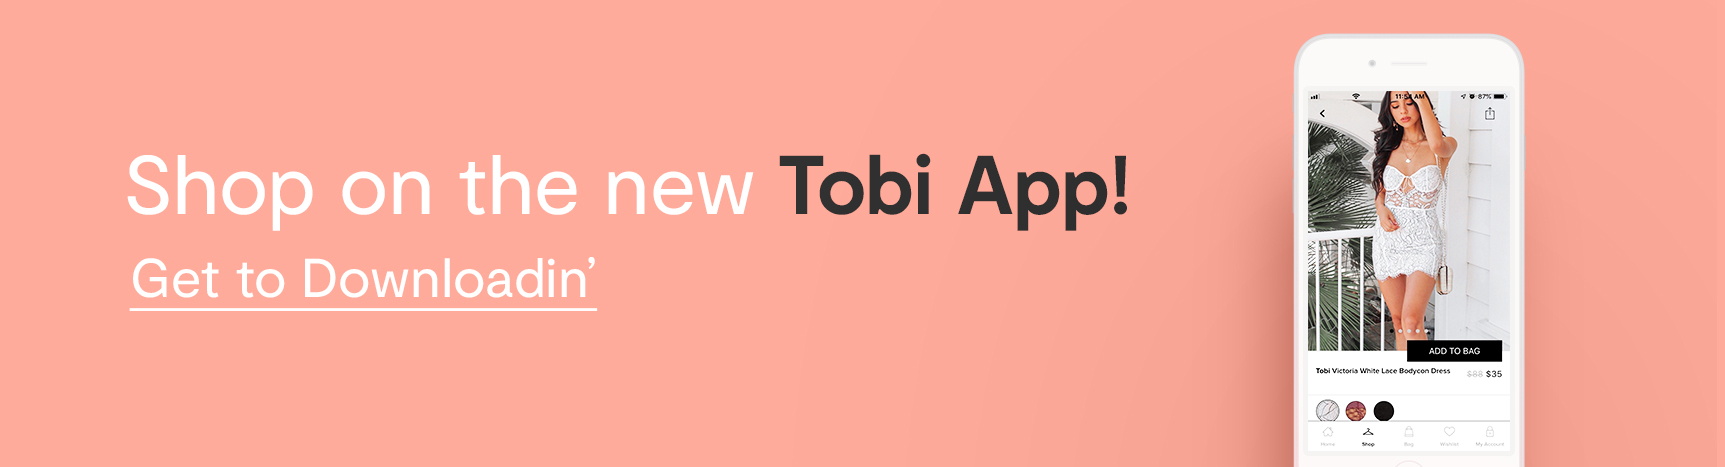 Shop on the new Tobi App! Get to Downloadin': photo of white iPhone featuring a woman wearing a white lace bodycon dress